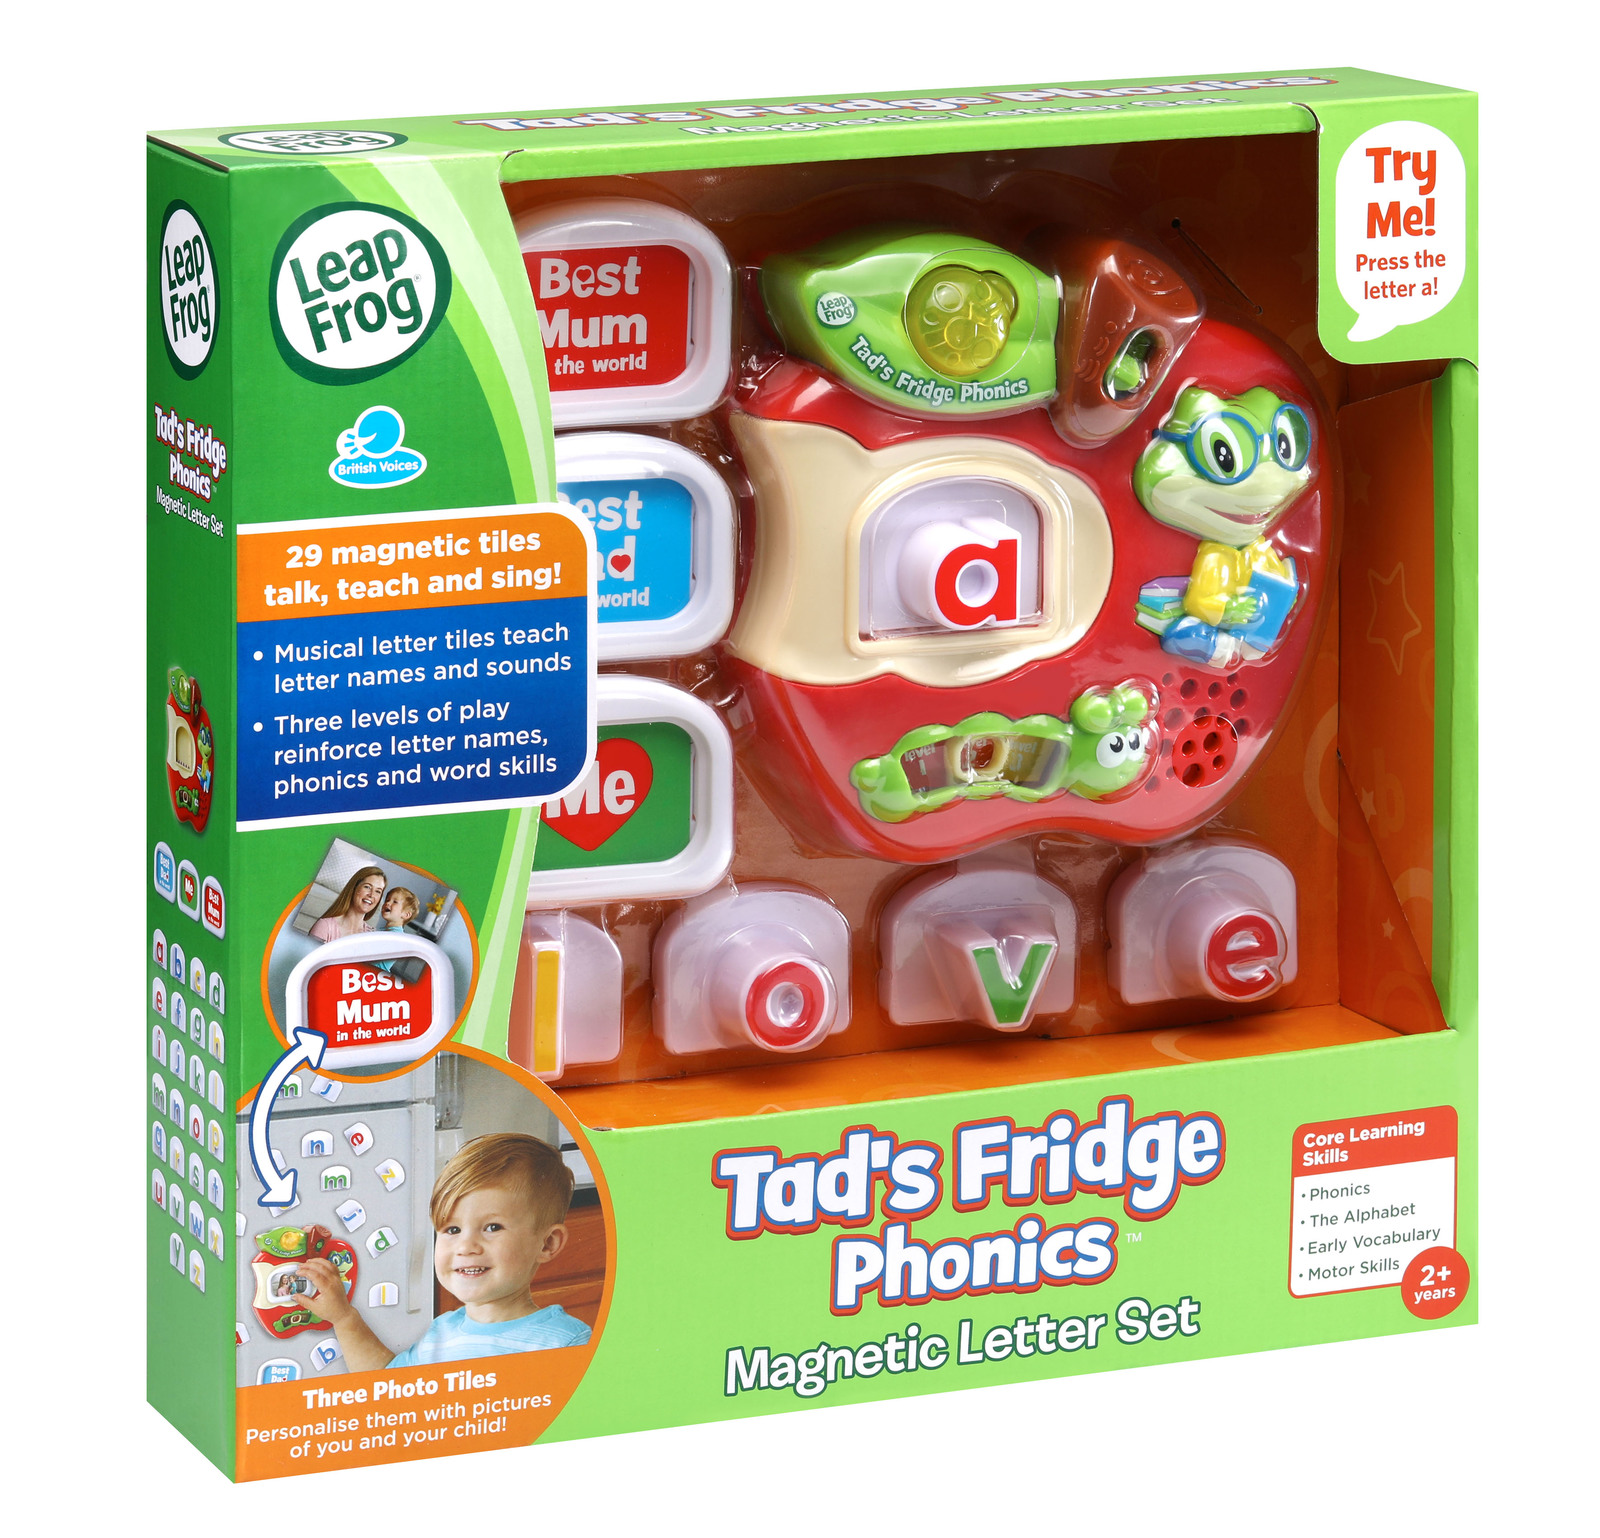 Leapfrog: Tads Fridge Phonics image